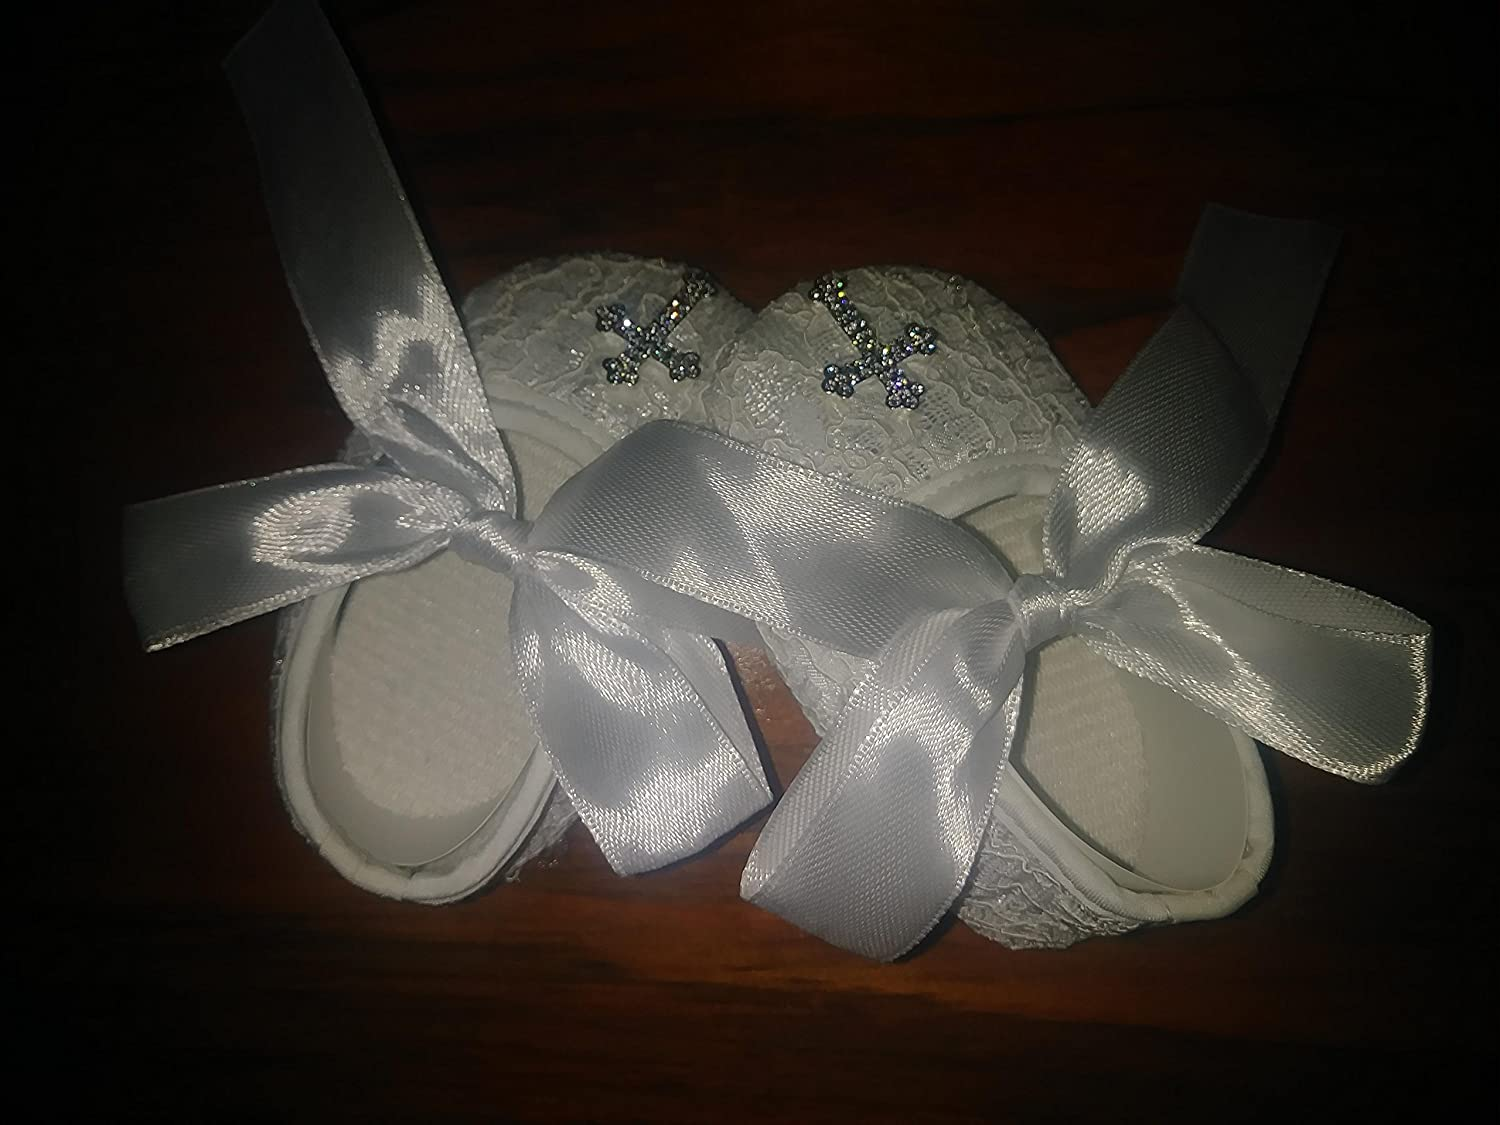 Rivhcell RIVCHELL White Christening Babtism Baby Shoes Newborn Soft Sole Crib Baby Girl 0-12 Months